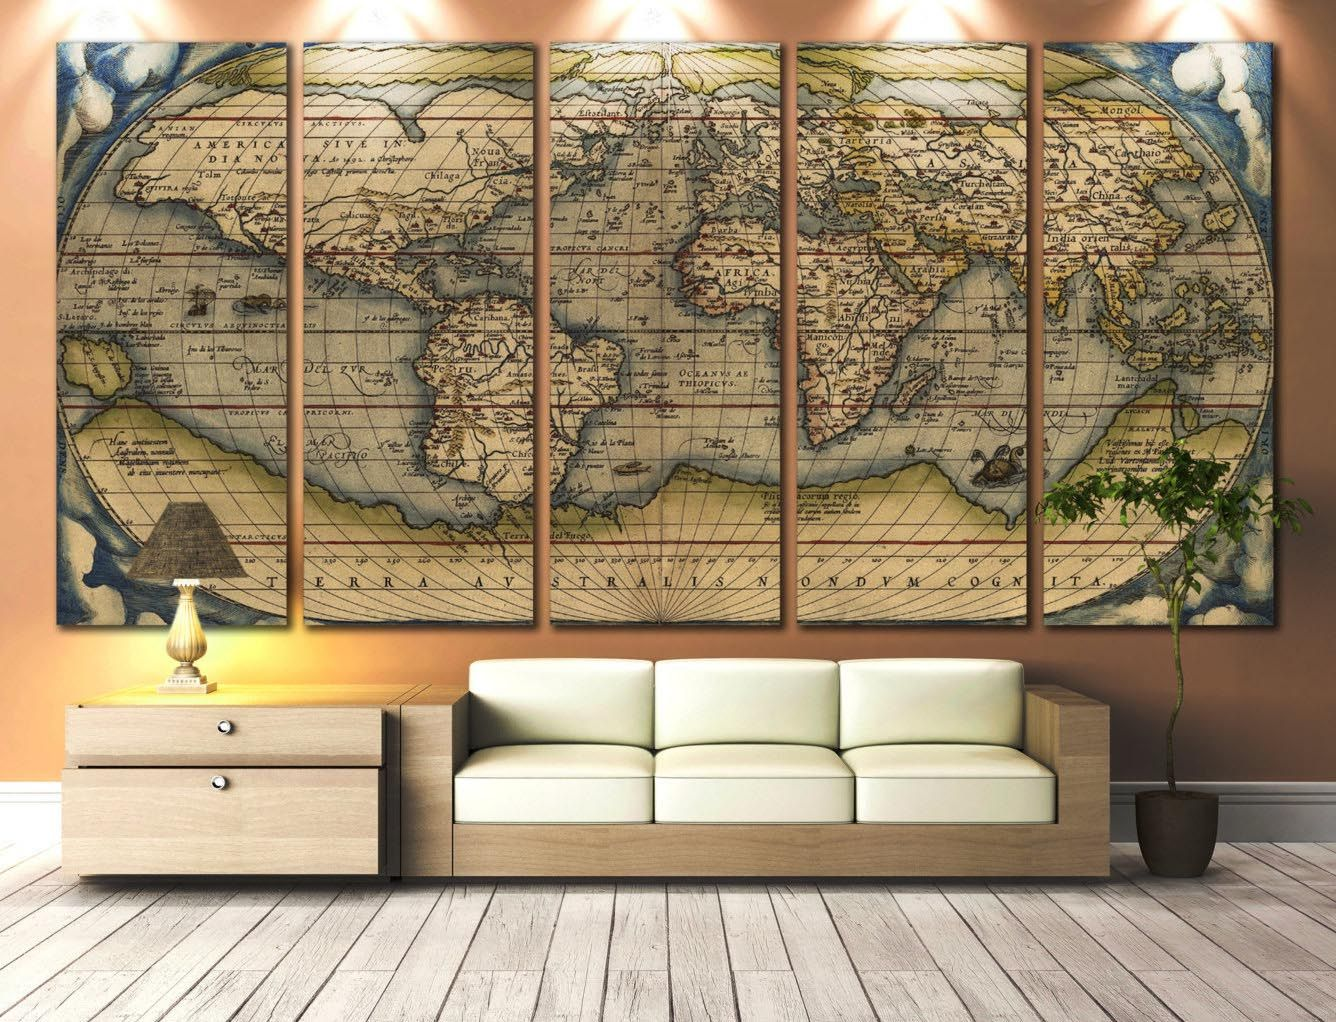 Large old world map tapestry tapestries pinterest tapestry large old world map tapestry gumiabroncs Image collections